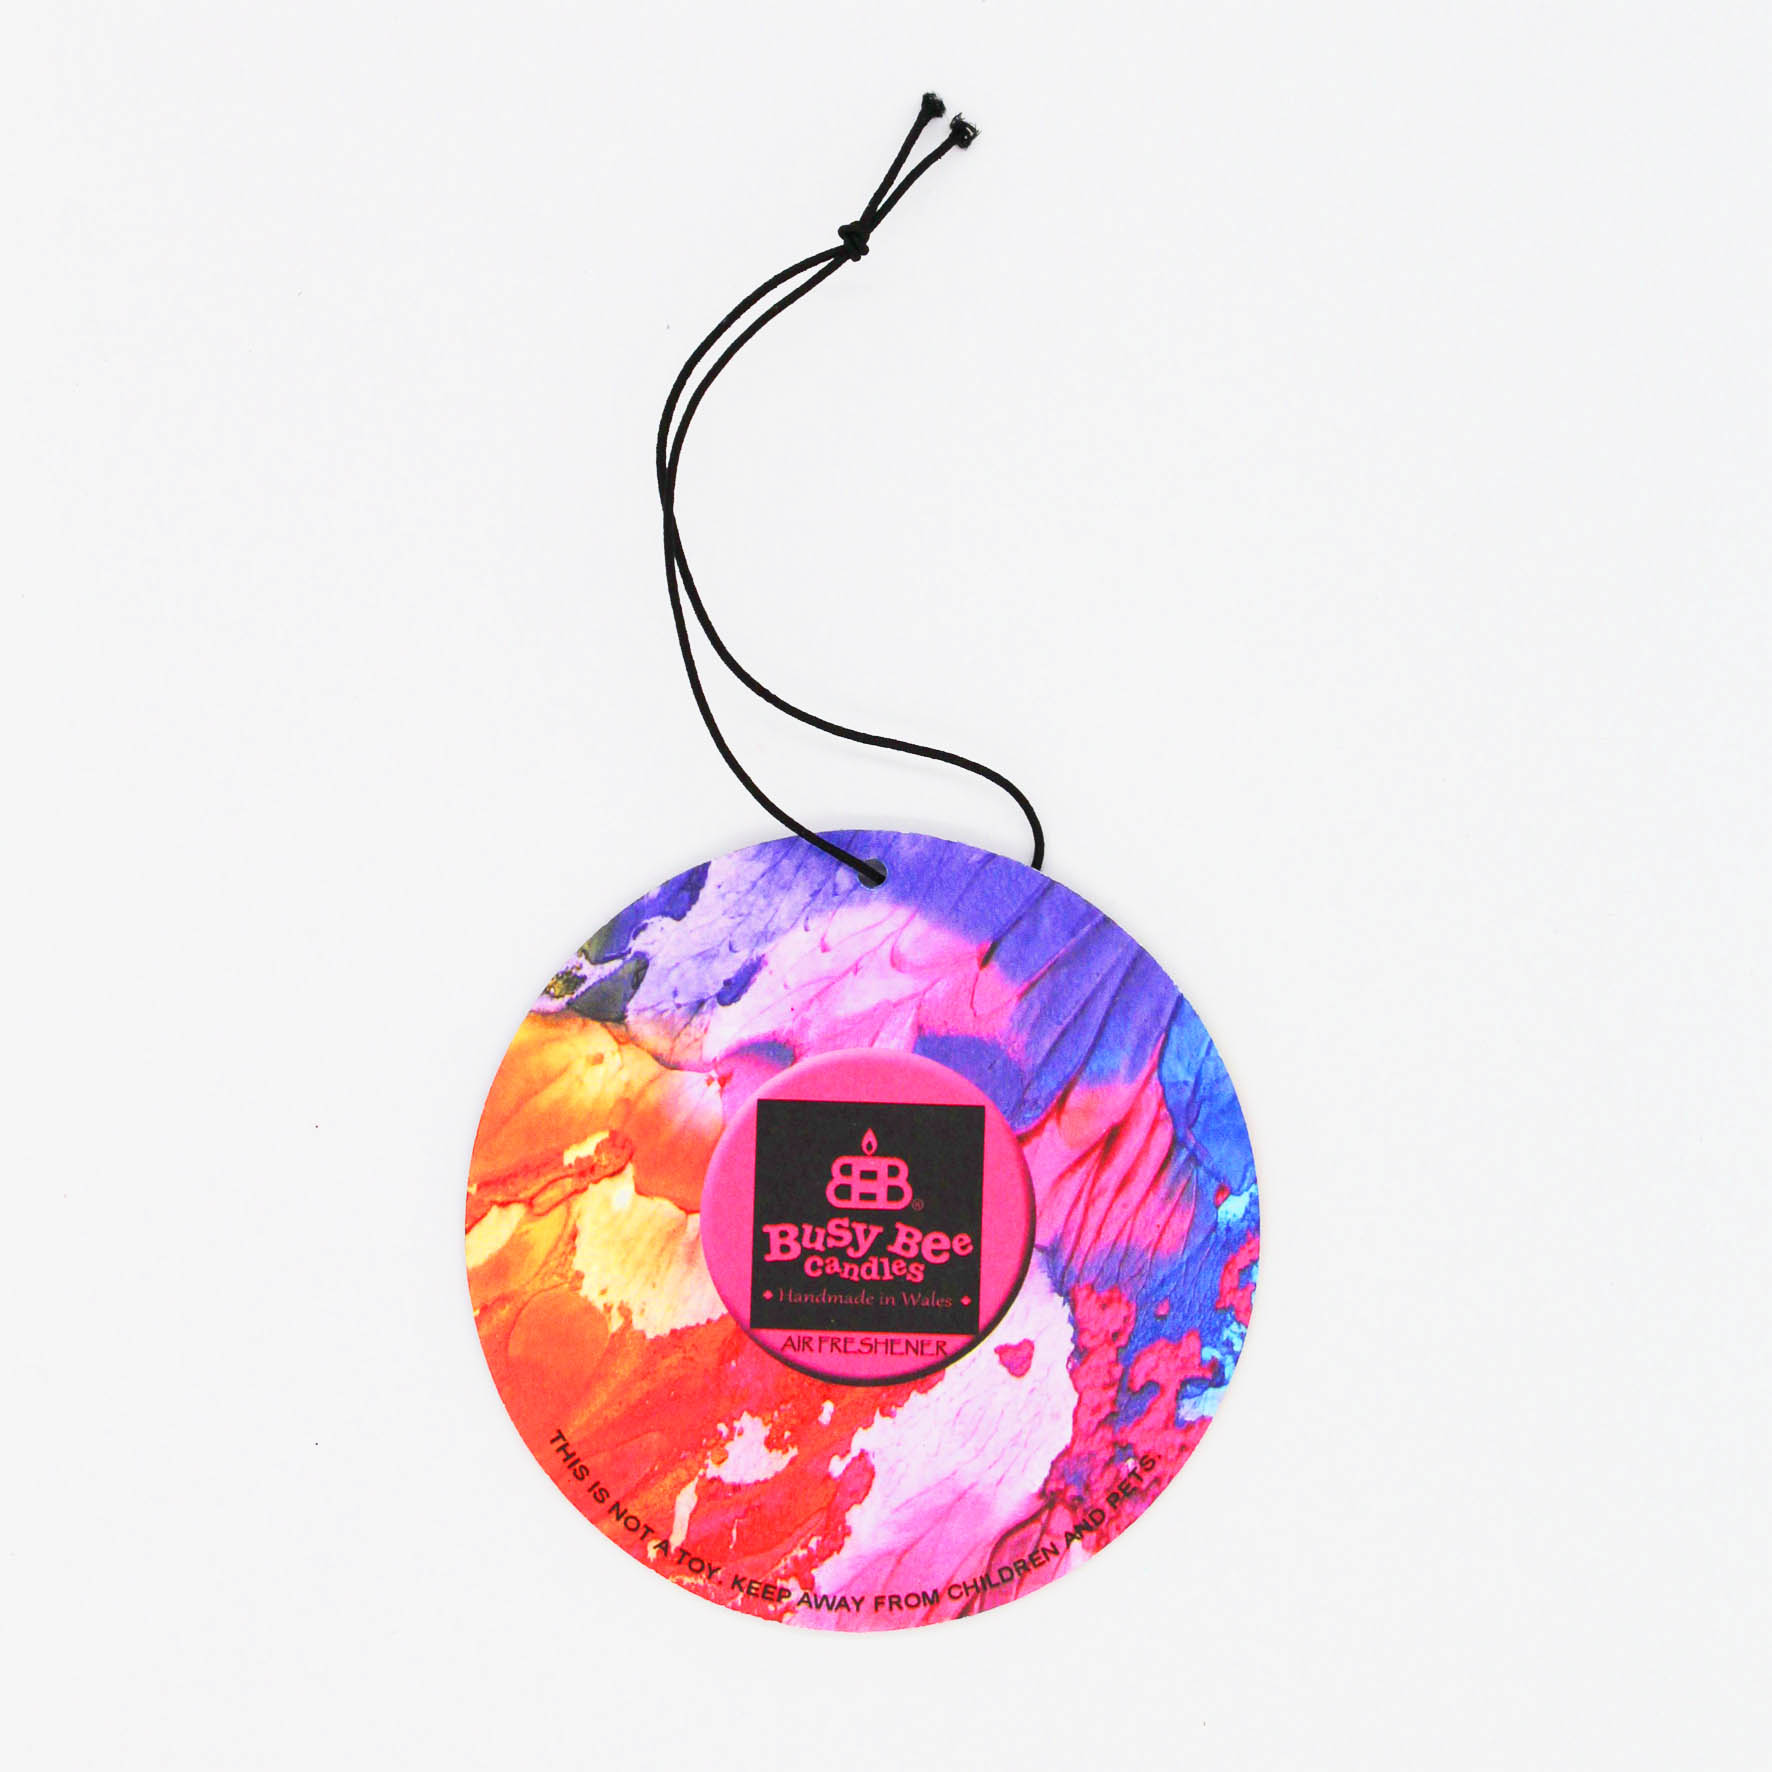 Cotton Candy Hanging Air Freshener